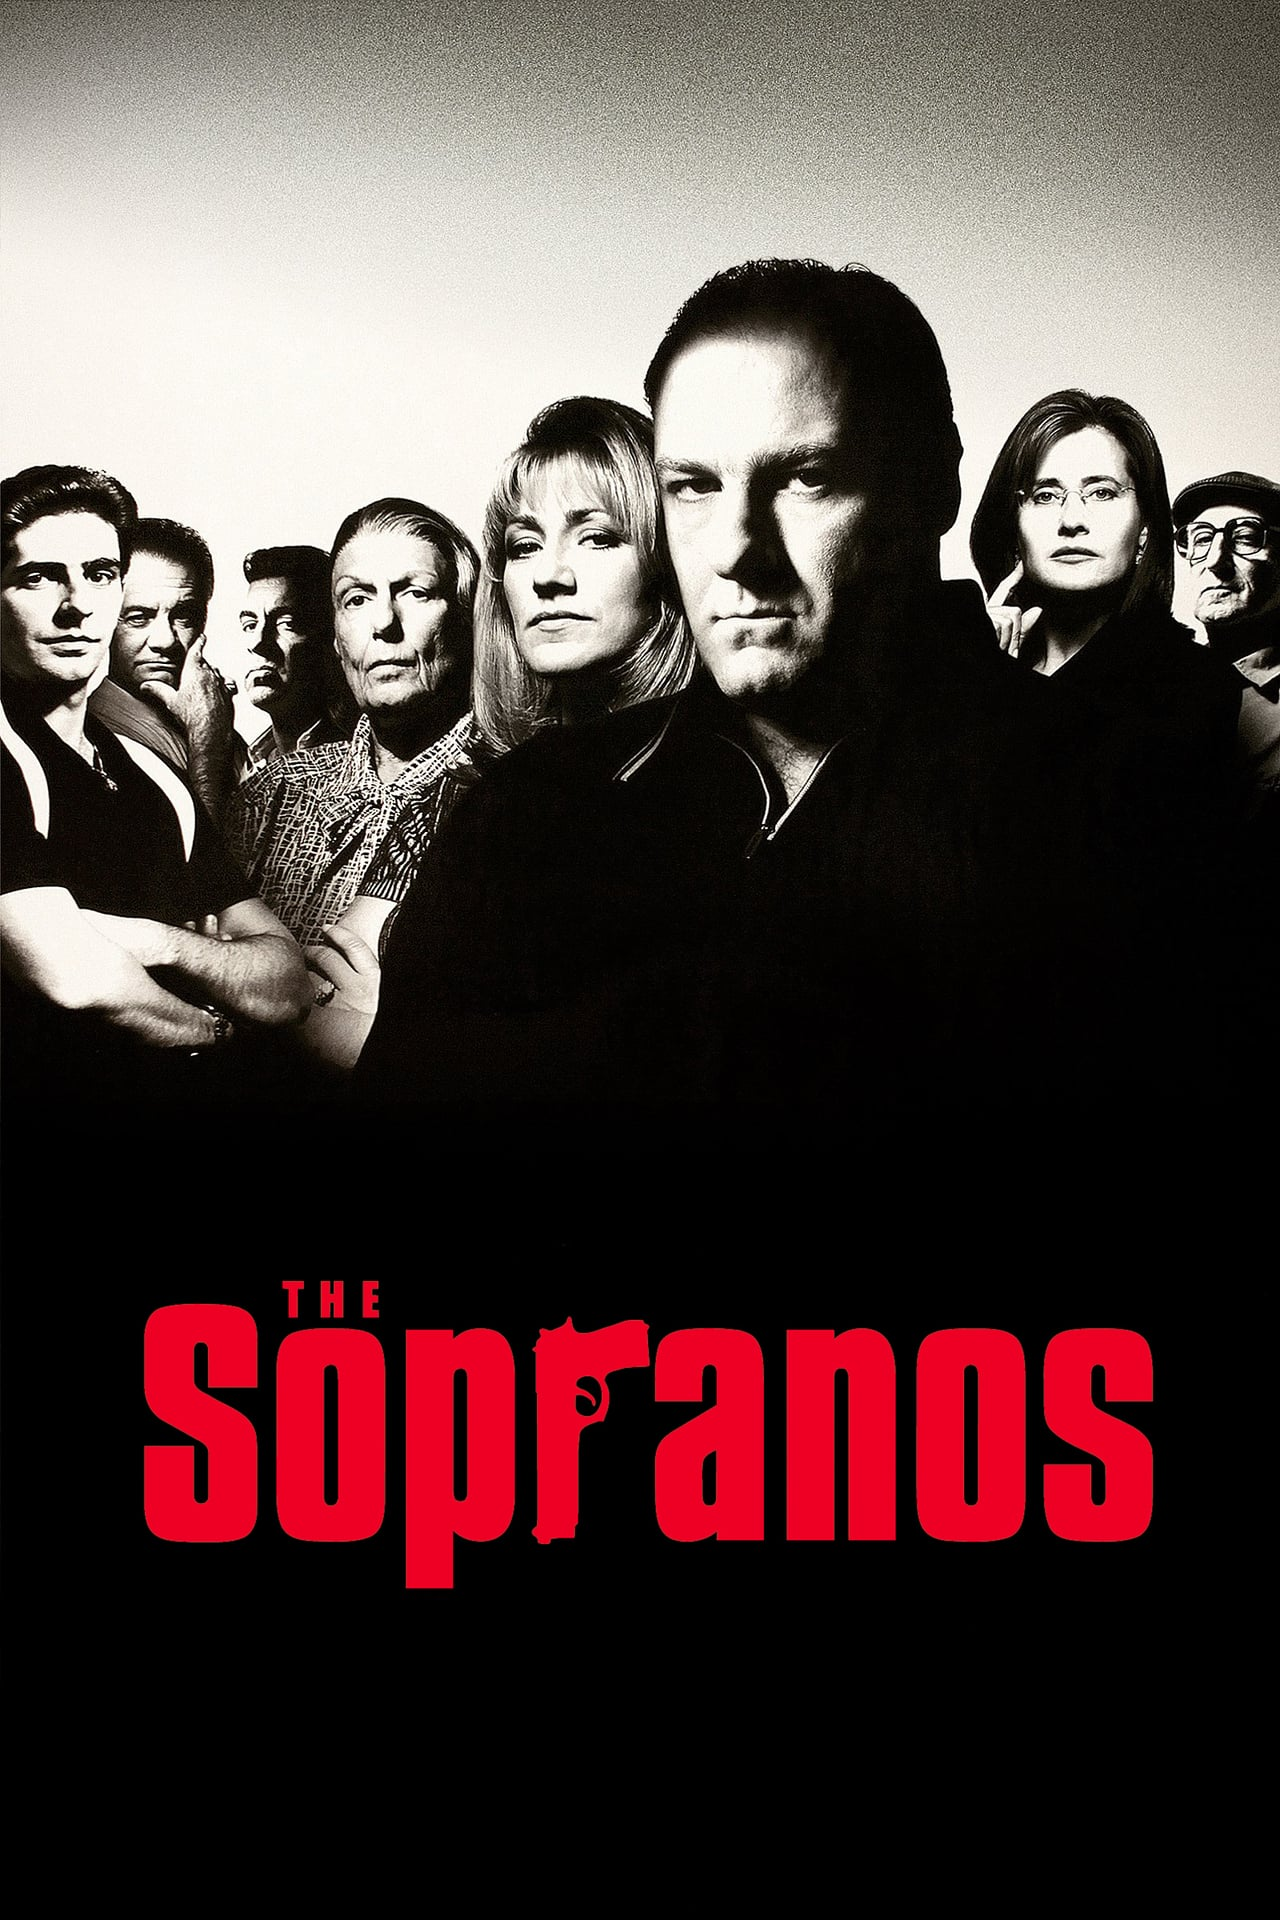 The Sopranos (season 5)